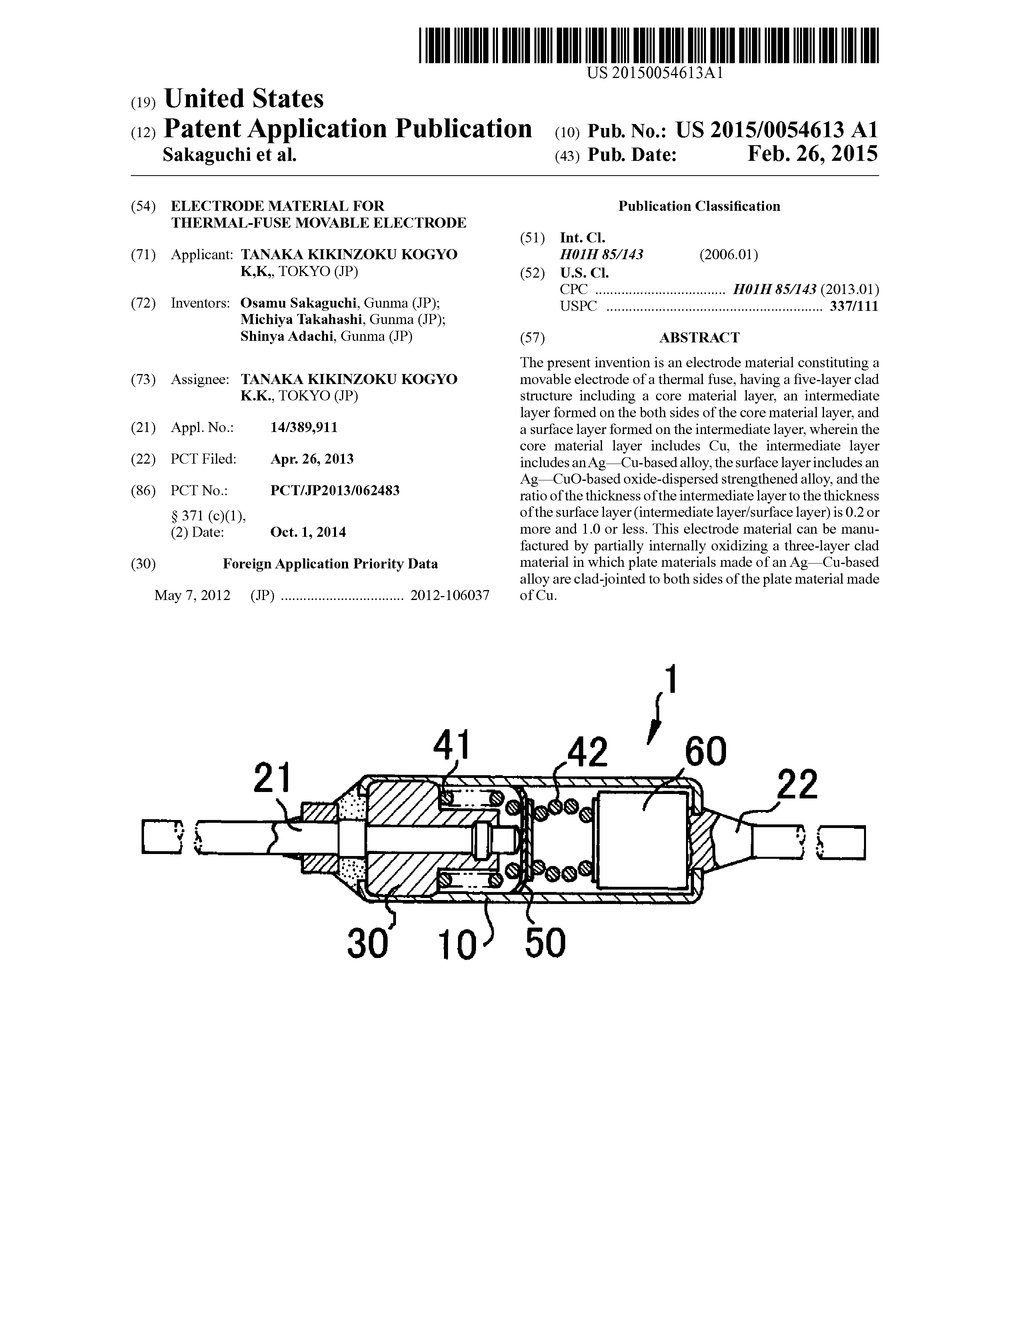 hight resolution of electrode material for thermal fuse movable electrode diagram schematic and image 01